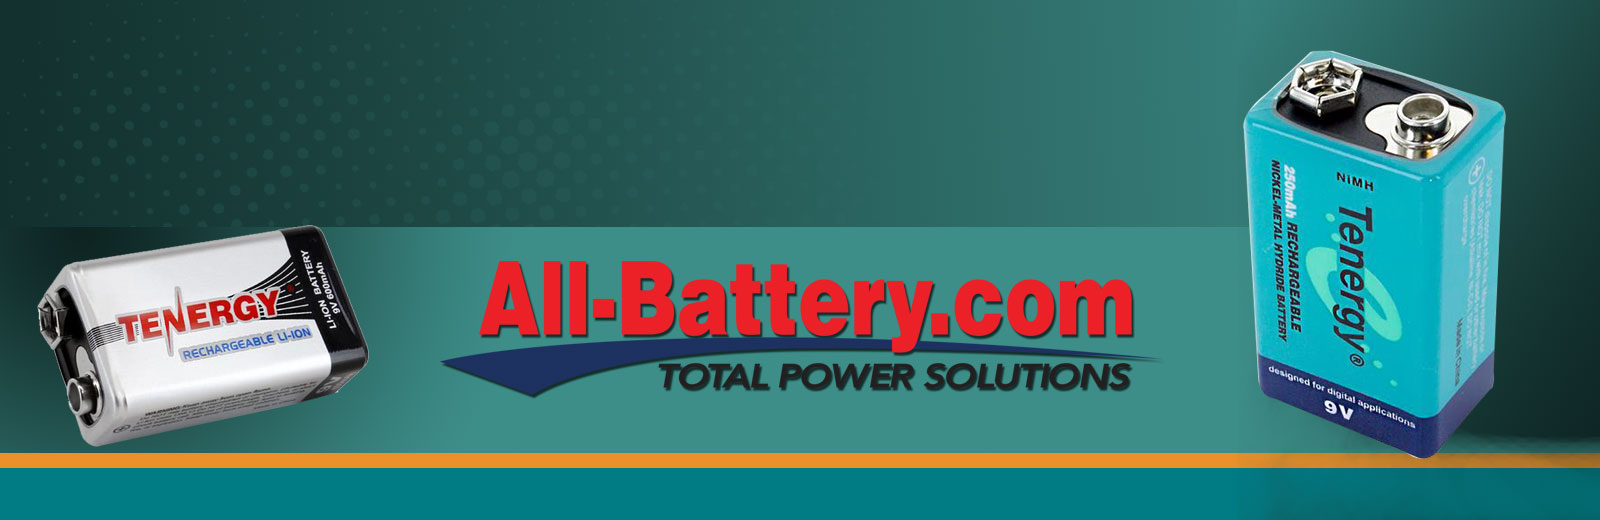 ALL-BATTERY